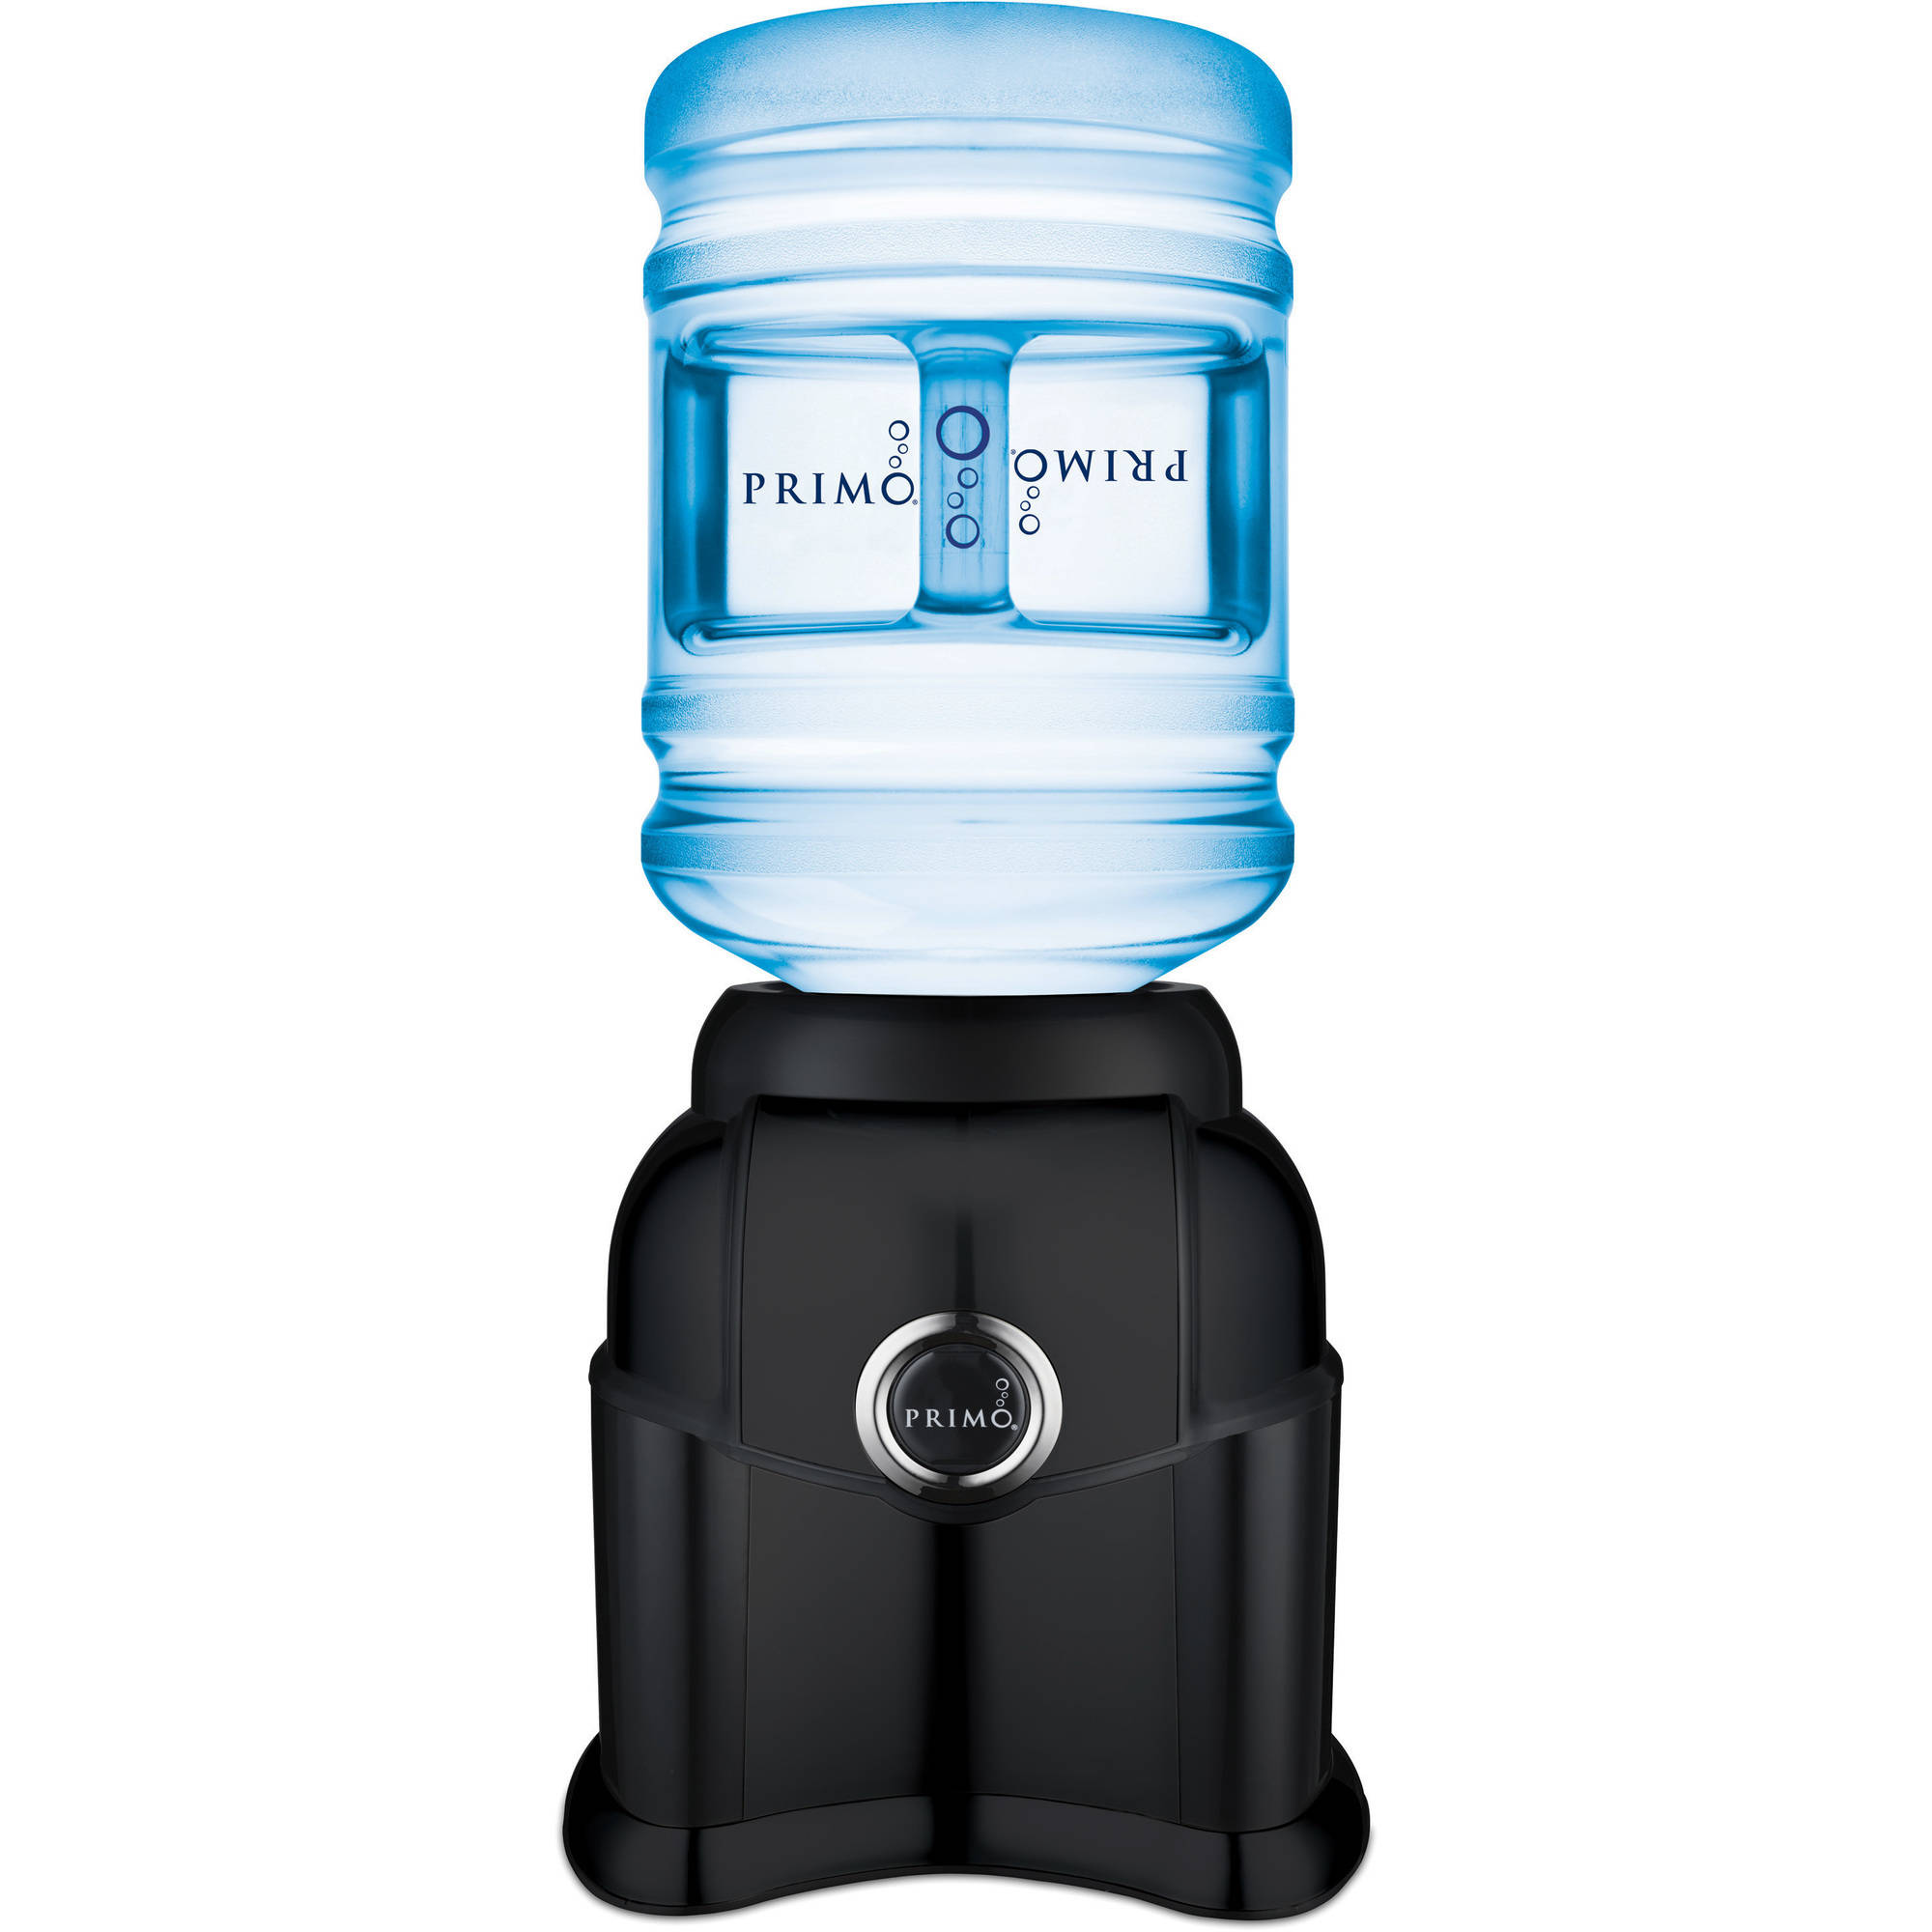 Primo Countertop Water Dispenser, Black, Model 601148